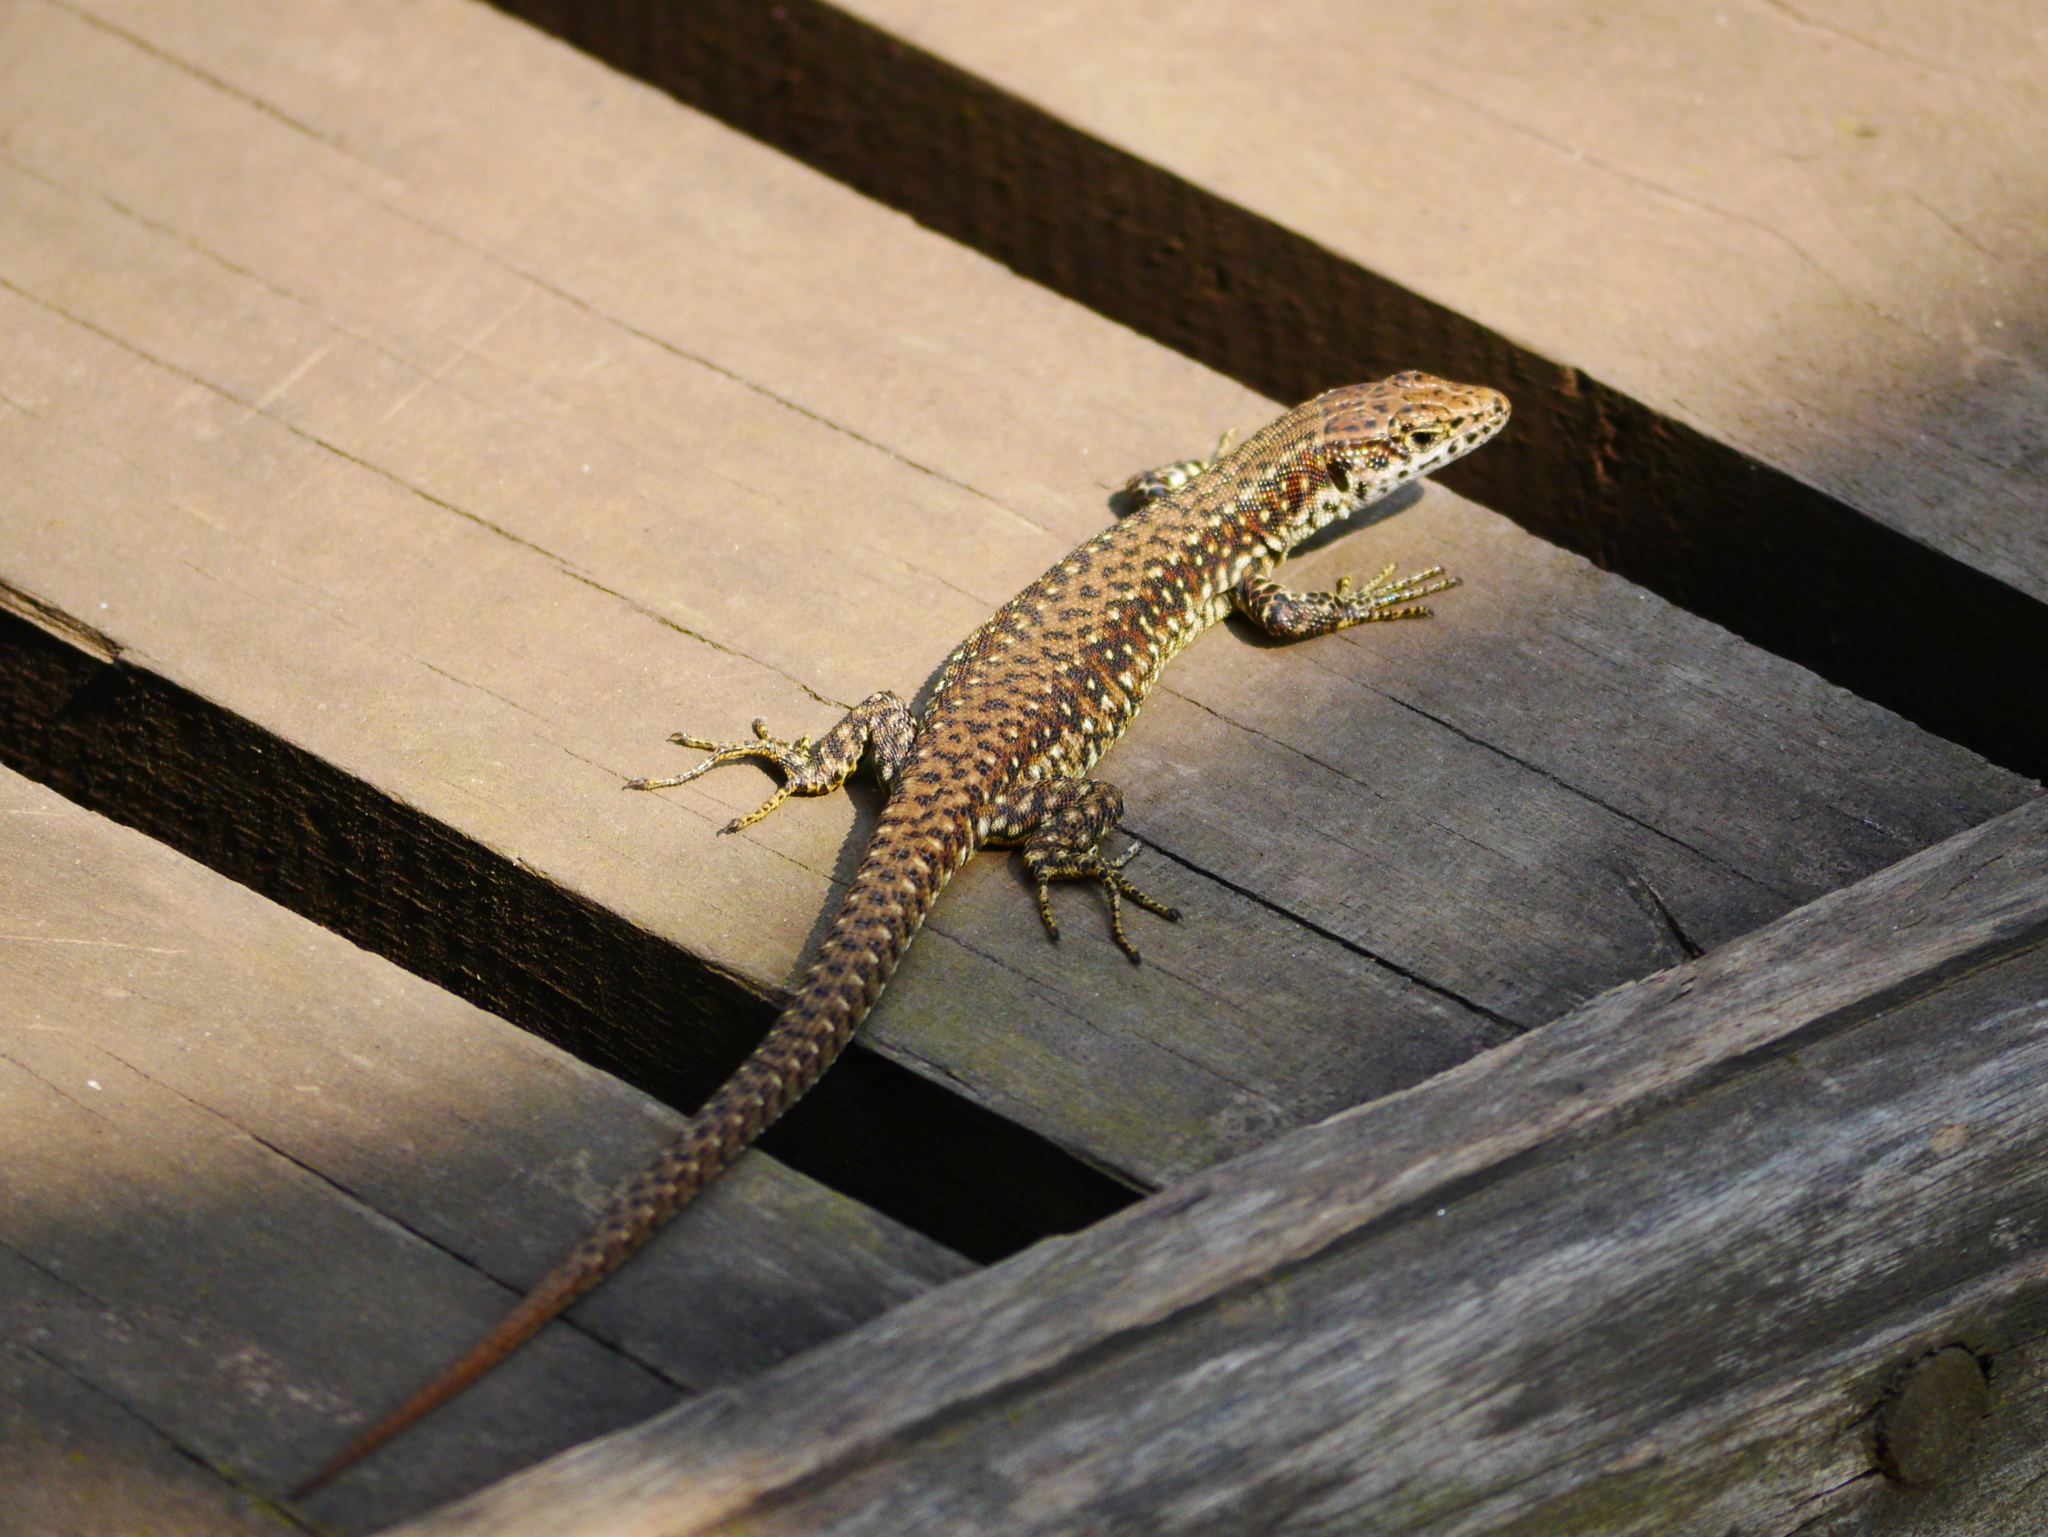 Image of Jackson's Forest Lizard